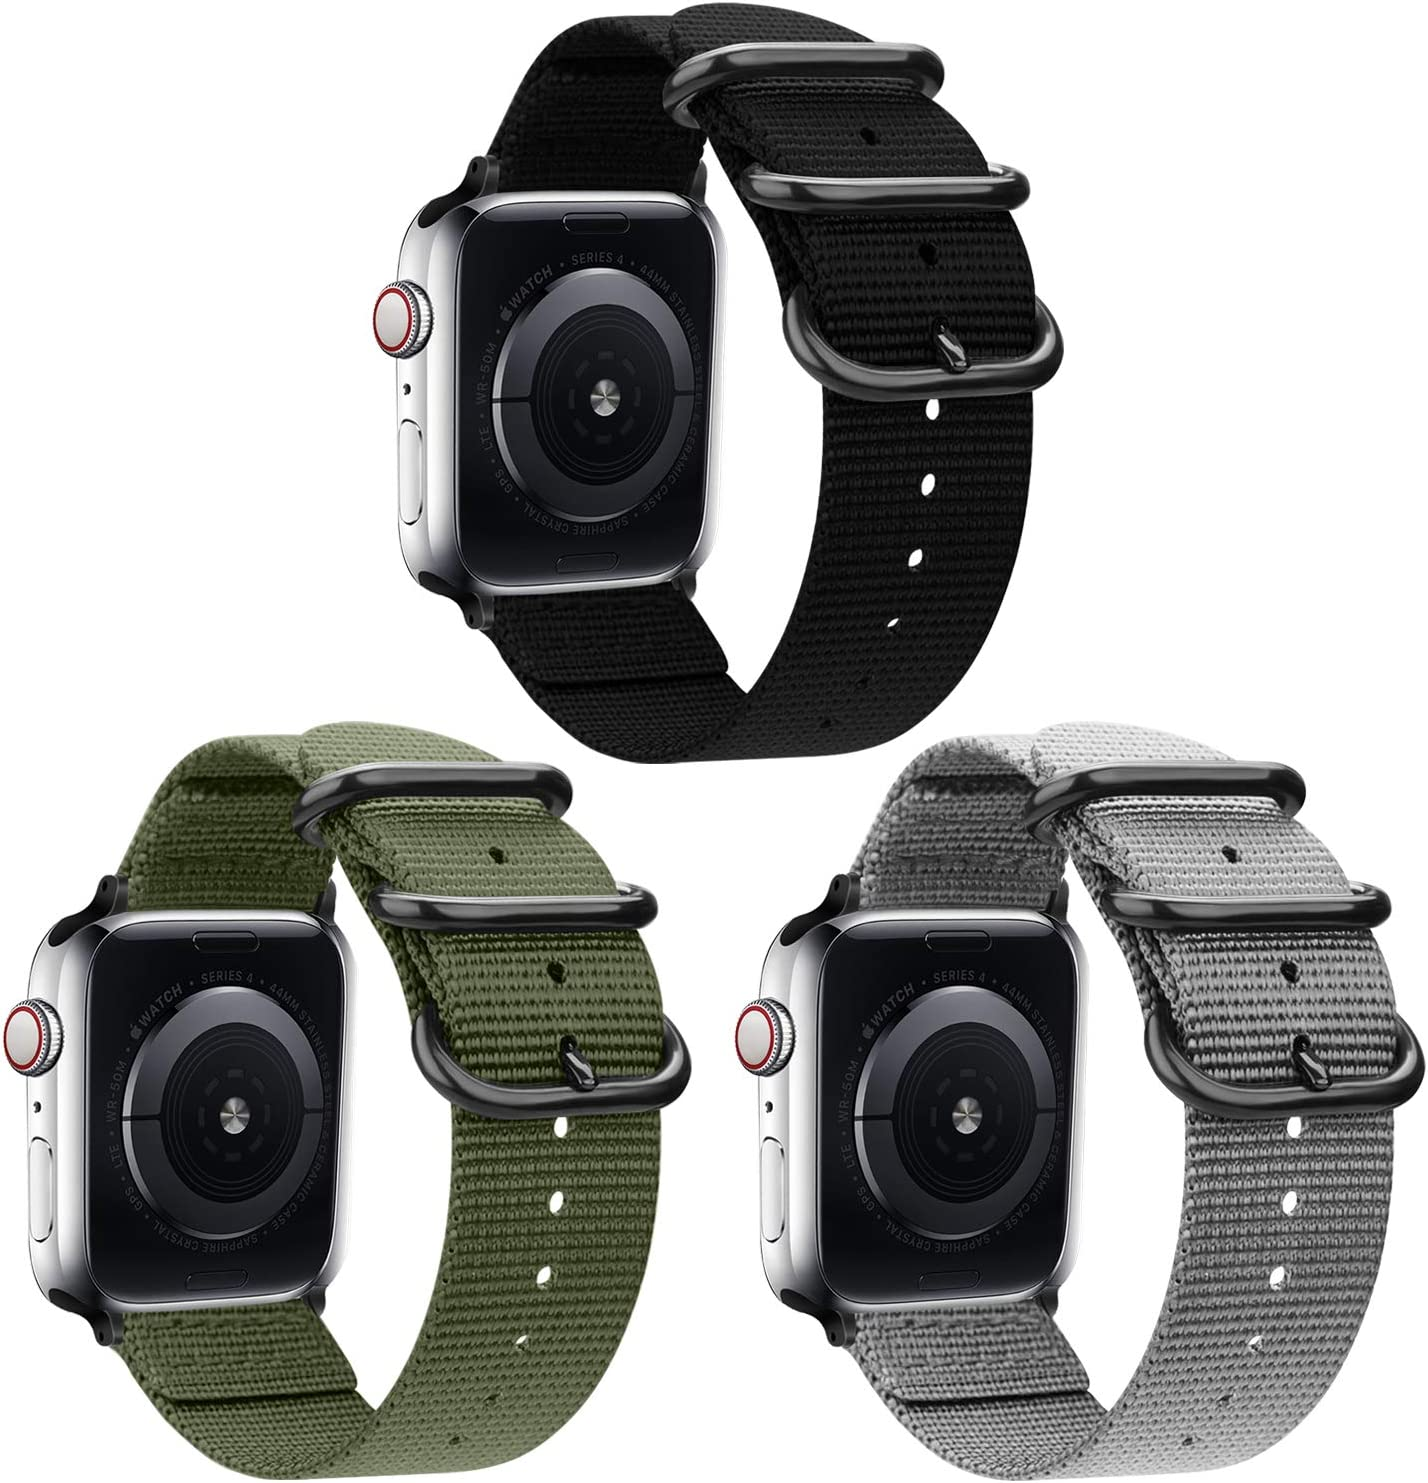 nylon Band Compatible with Apple Watch Band 44mm 42mm 40mm 38mm, Lightweight Breathable Woven Nylon Sport Wrist Strap with Metal Buckle Compatible 5/4/3/2/1 (16-, 38mm/40mm)